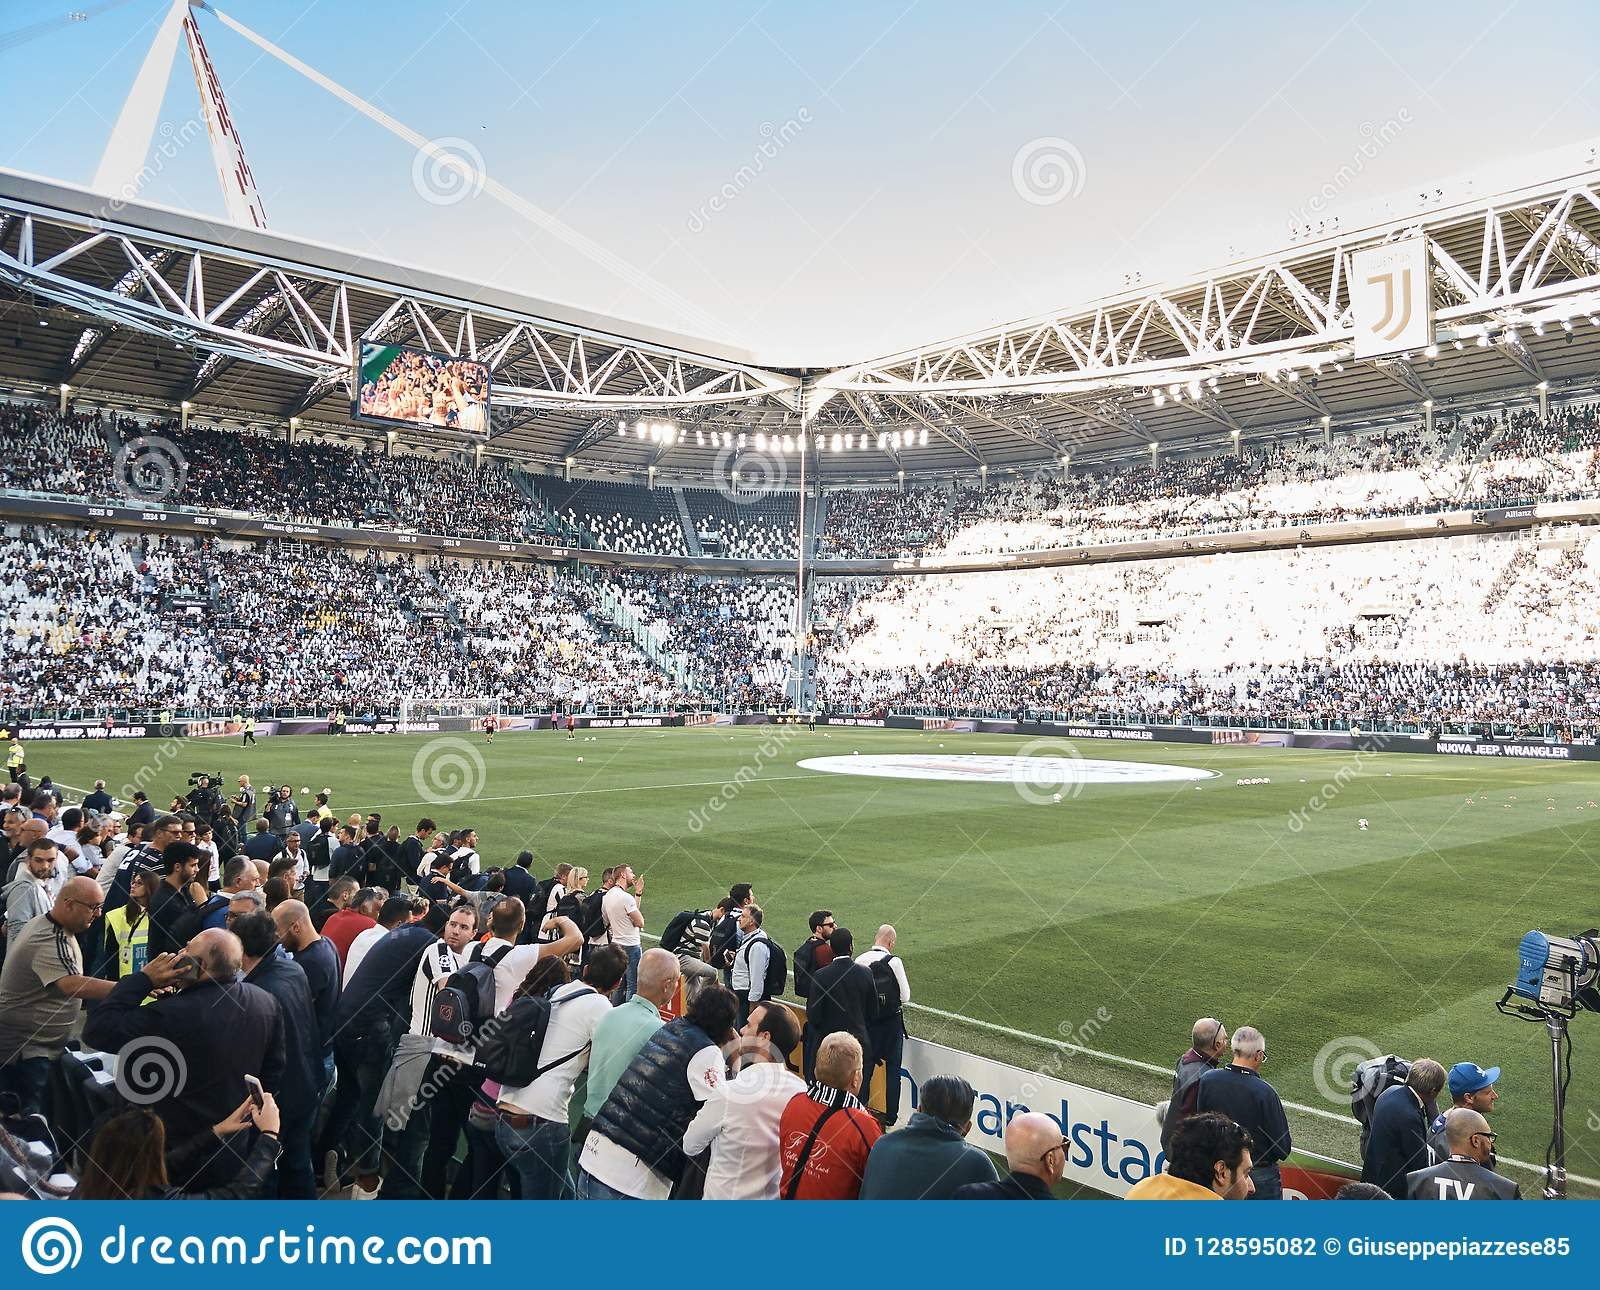 view of the allianz stadium the juventus home field editorial photography image of championship background 128595082 https www dreamstime com turin italy september view allianz stadium field where juventus plays its home matches shot taken sunny day image128595082